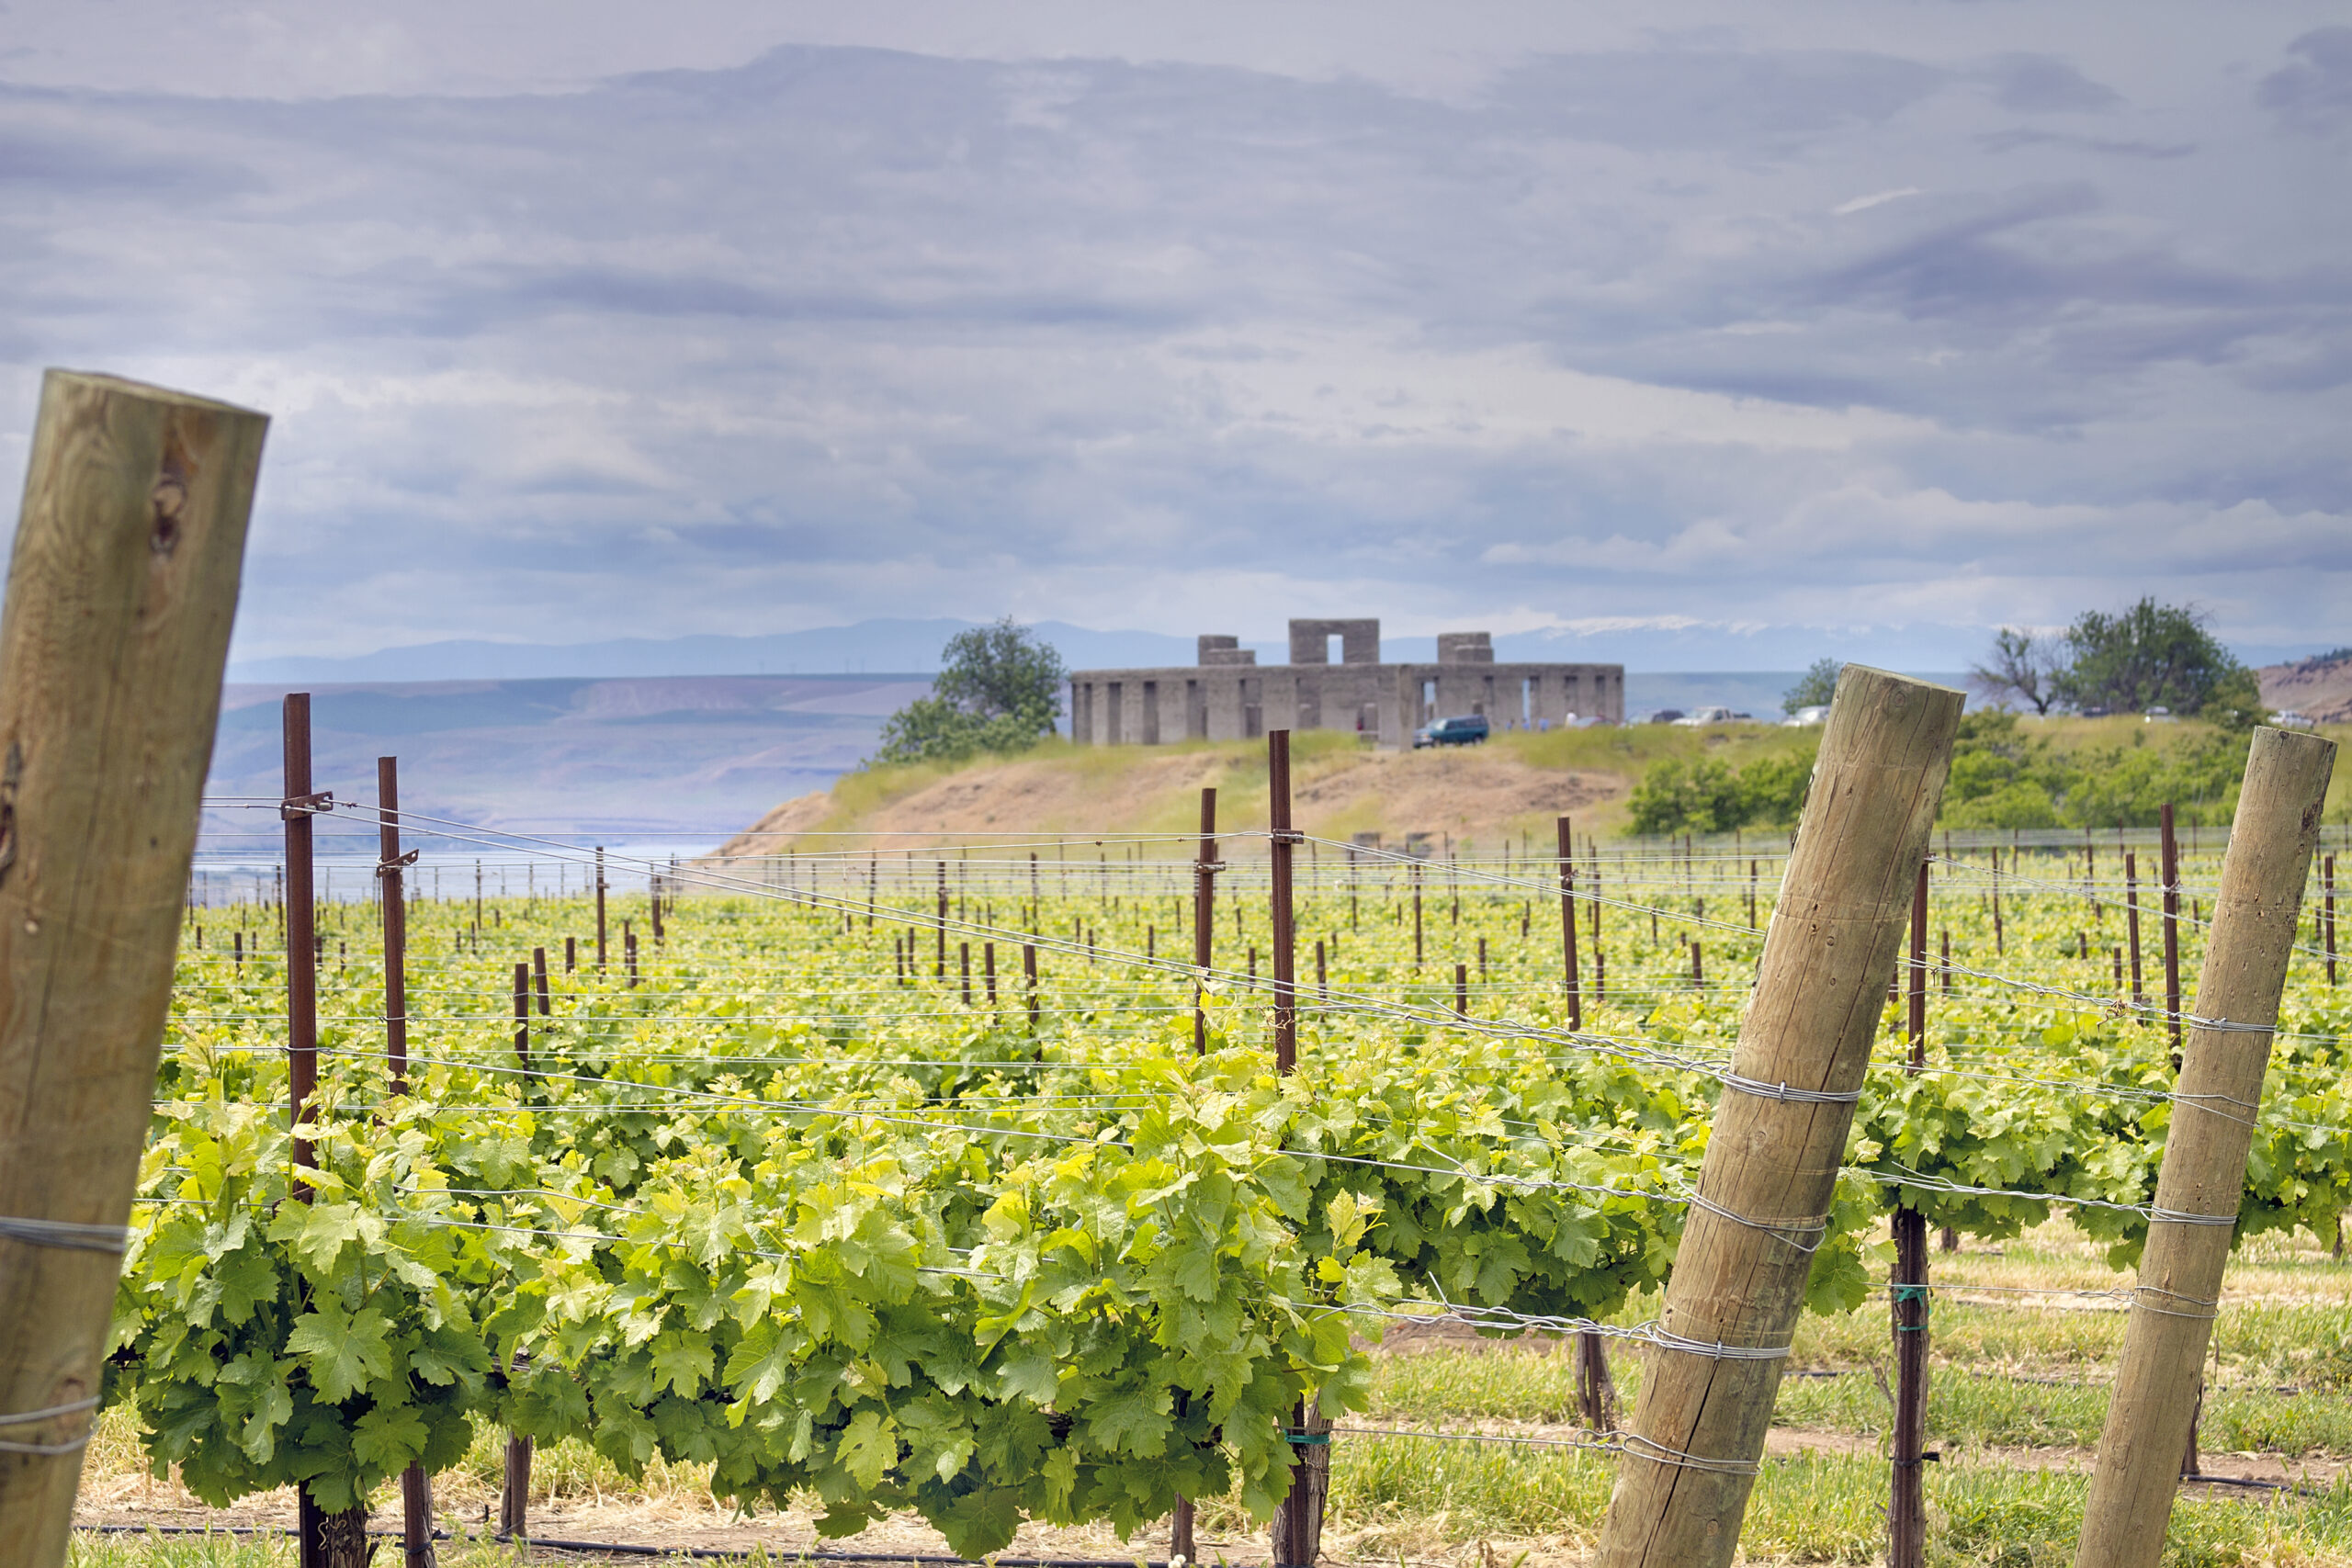 vineyard in maryhill washington with stonehenge visible in the distance